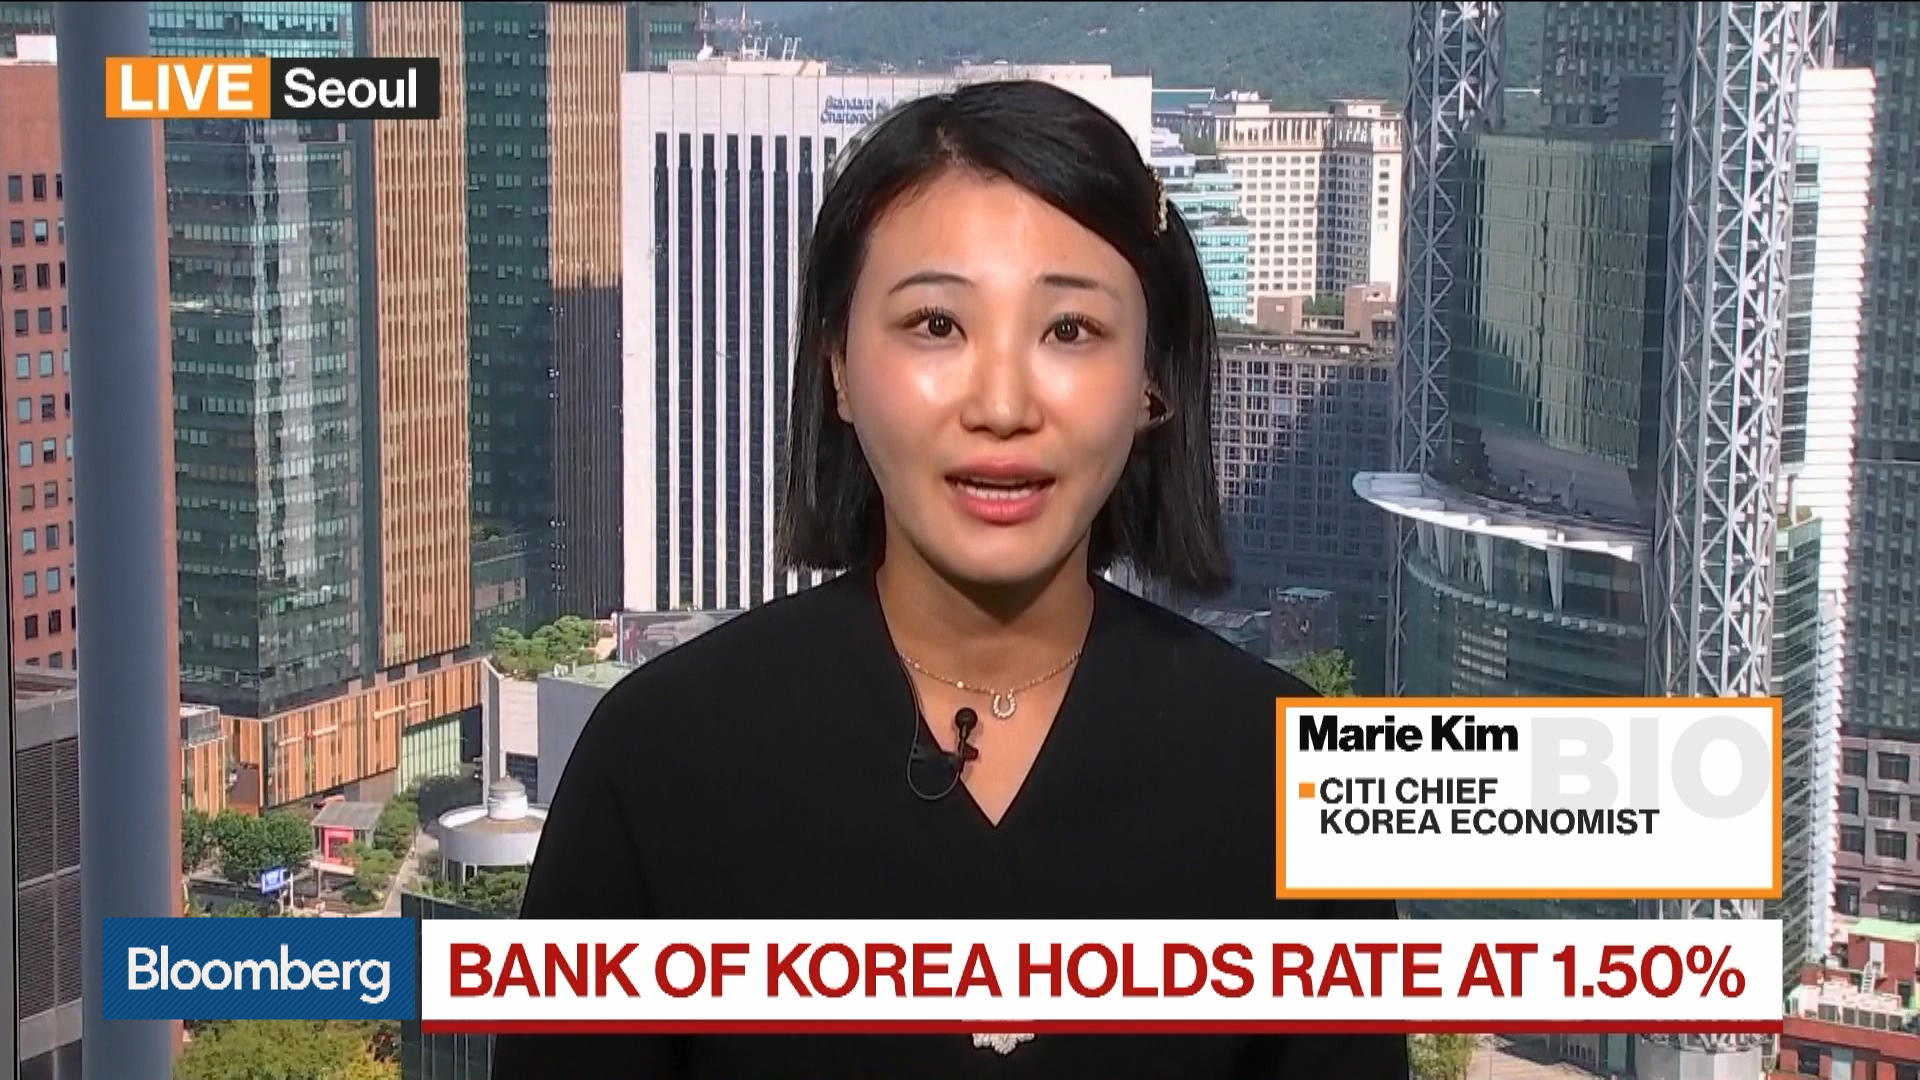 Citi Chief Korea Economist Marie Kim on BOK Decision, Fiscal Policy, Growth Outlook